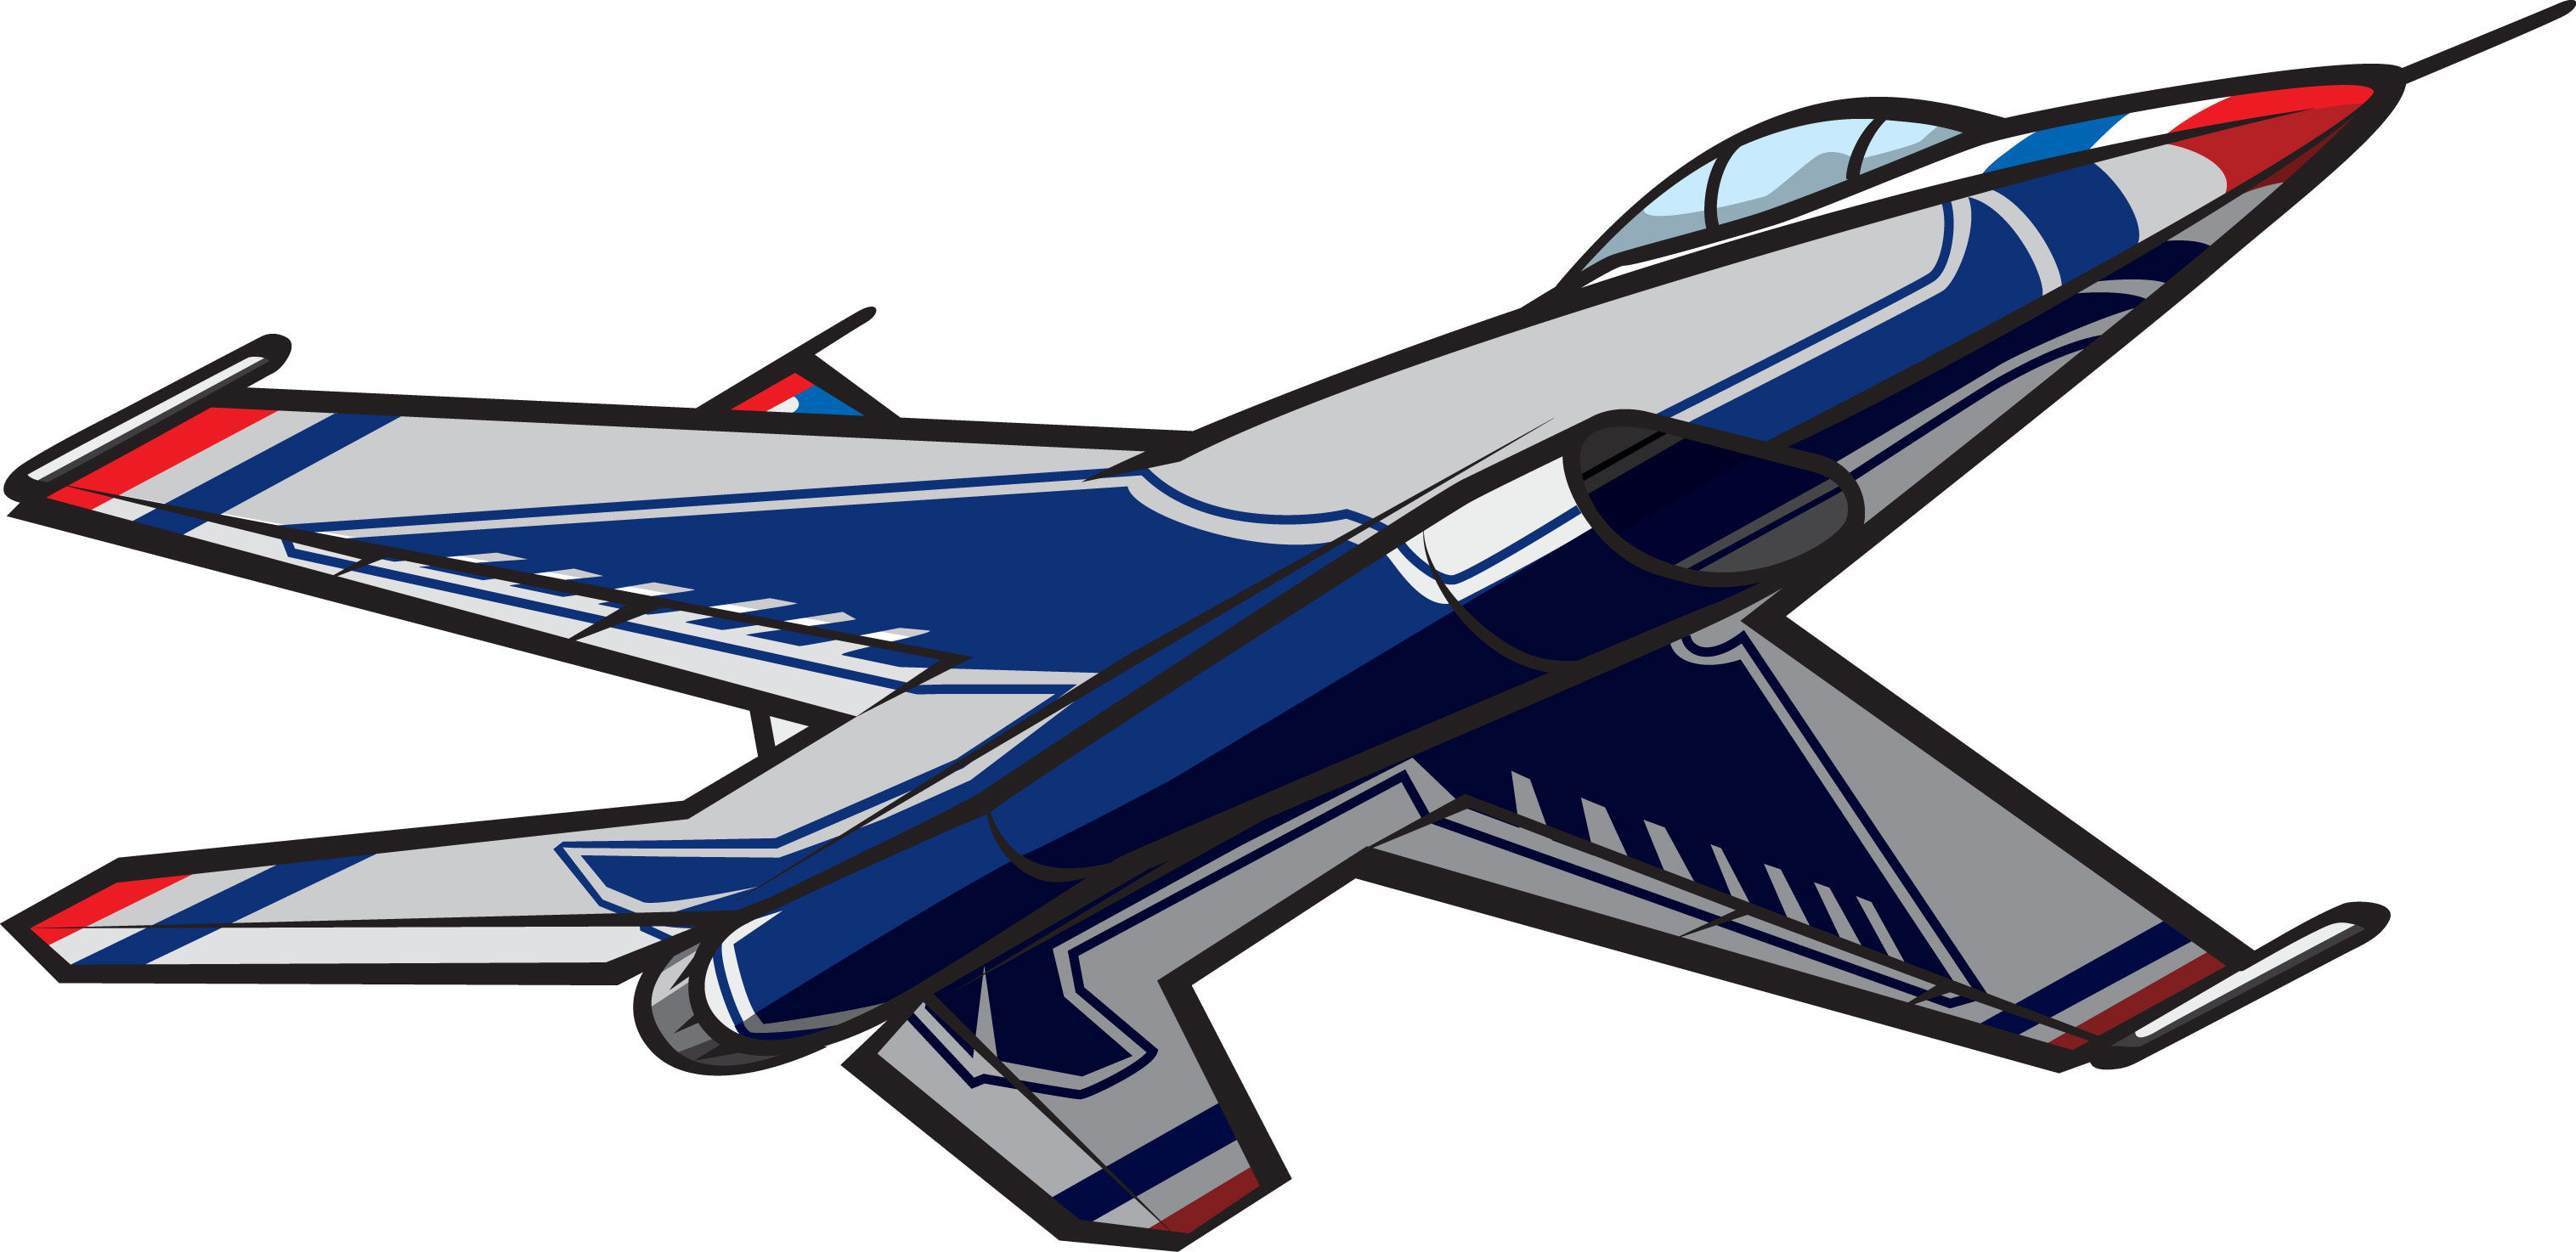 Thunderbirds clipart clip art transparent Free Thunderbird Cliparts, Download Free Clip Art, Free Clip Art on ... clip art transparent